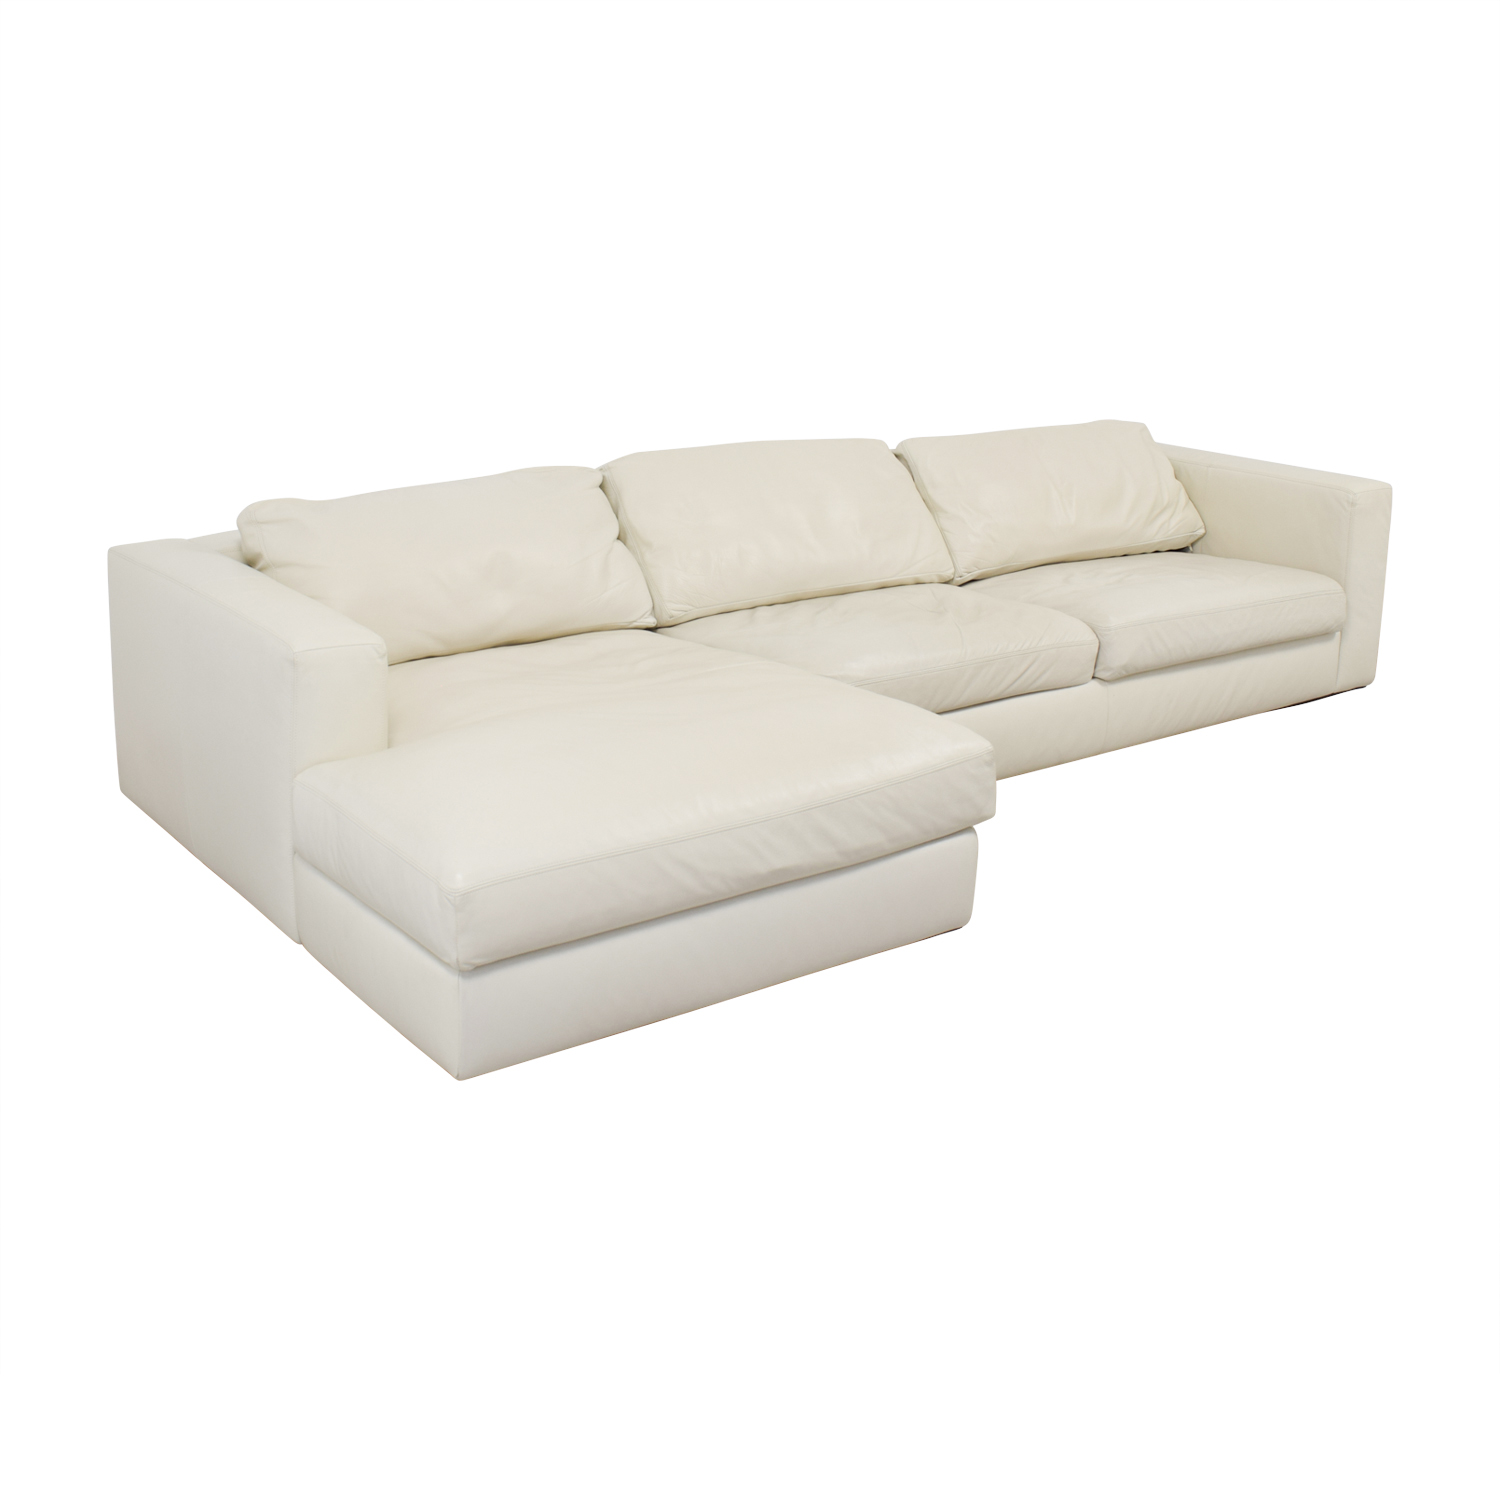 Design Within Reach Design Within Reach by Jeffrey Bernett Reid White Left Chaise Sectional for sale